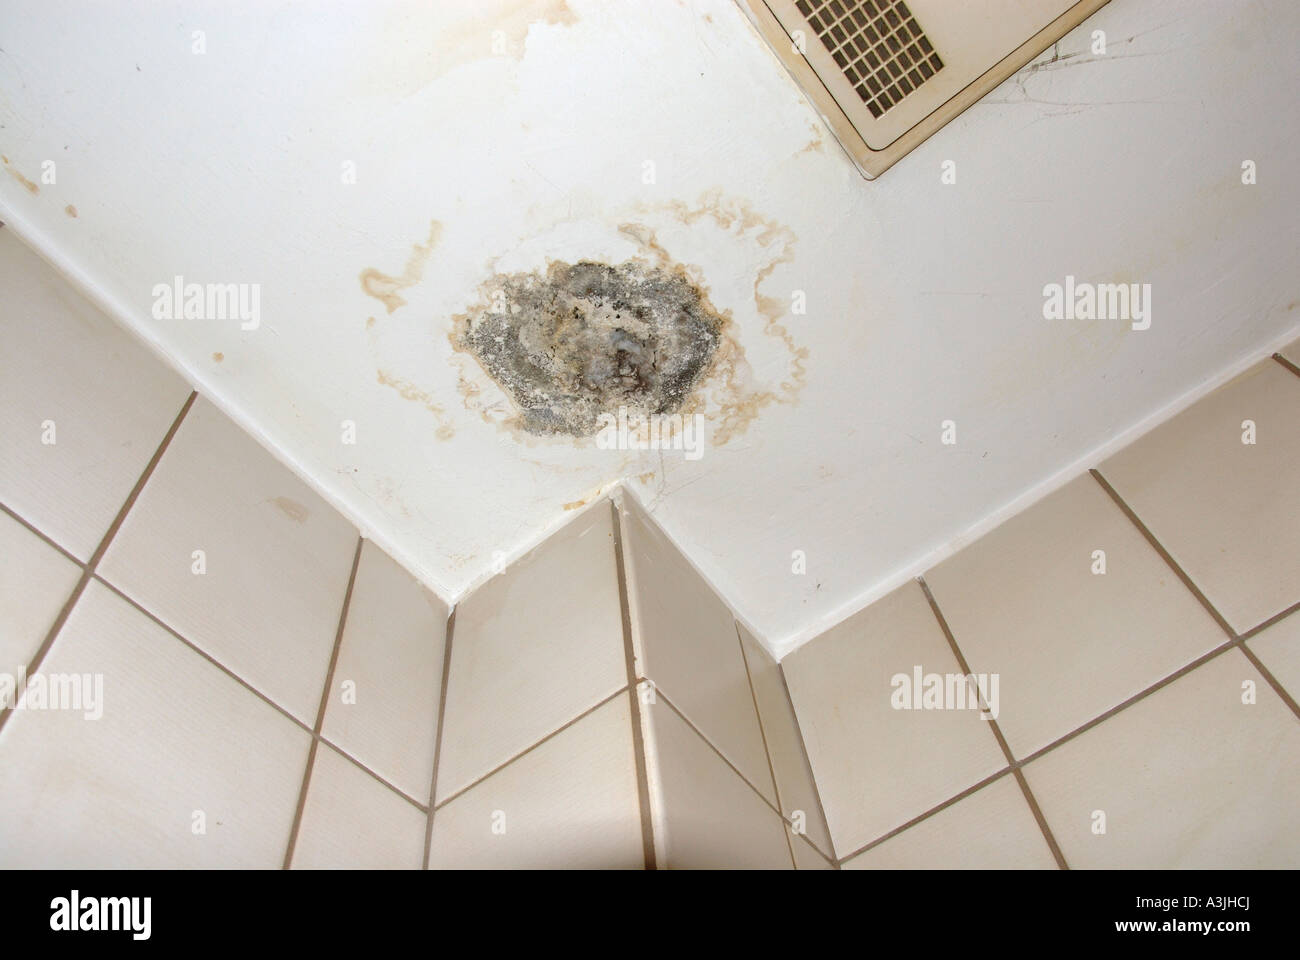 Schimmel Im Badezimmer Decke Mold Stockfotos And Mold Bilder Alamy